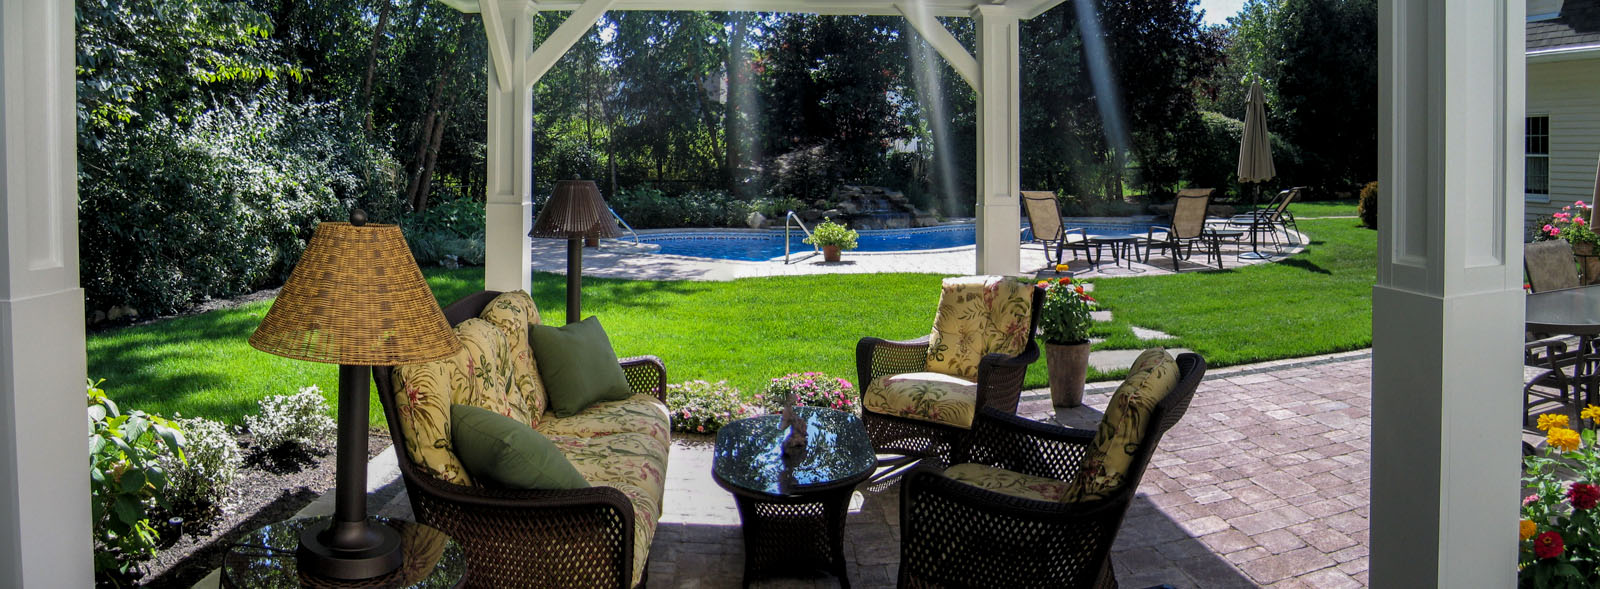 landscape design with patio, pavilion, and swimming pool